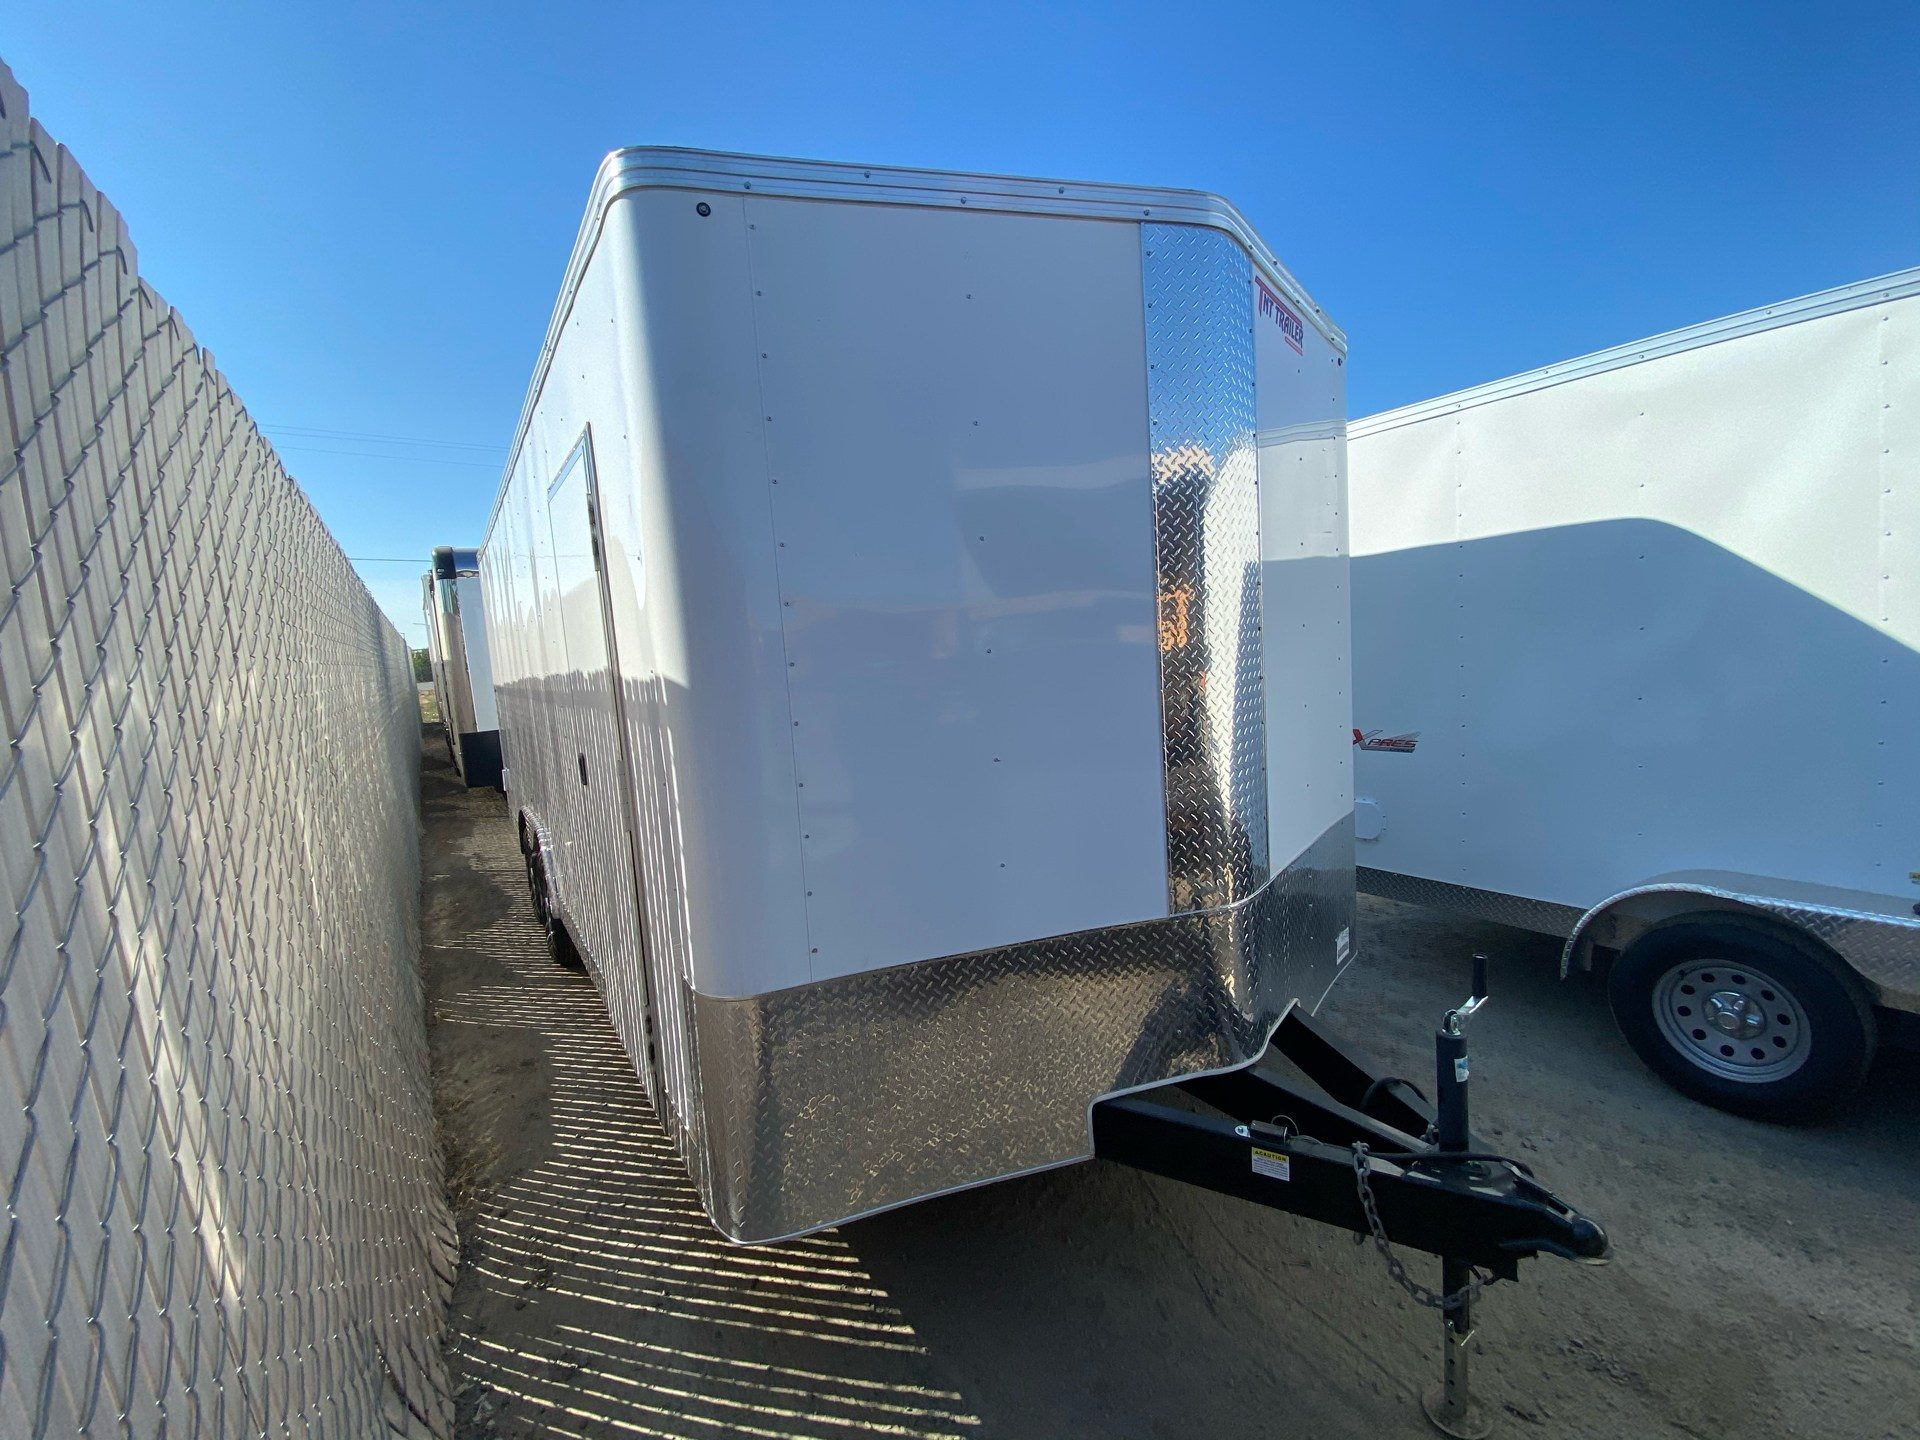 2020 TNT Trailer, LLC 20' X 8.5' CARGO TRAILER in Elk Grove, California - Photo 2